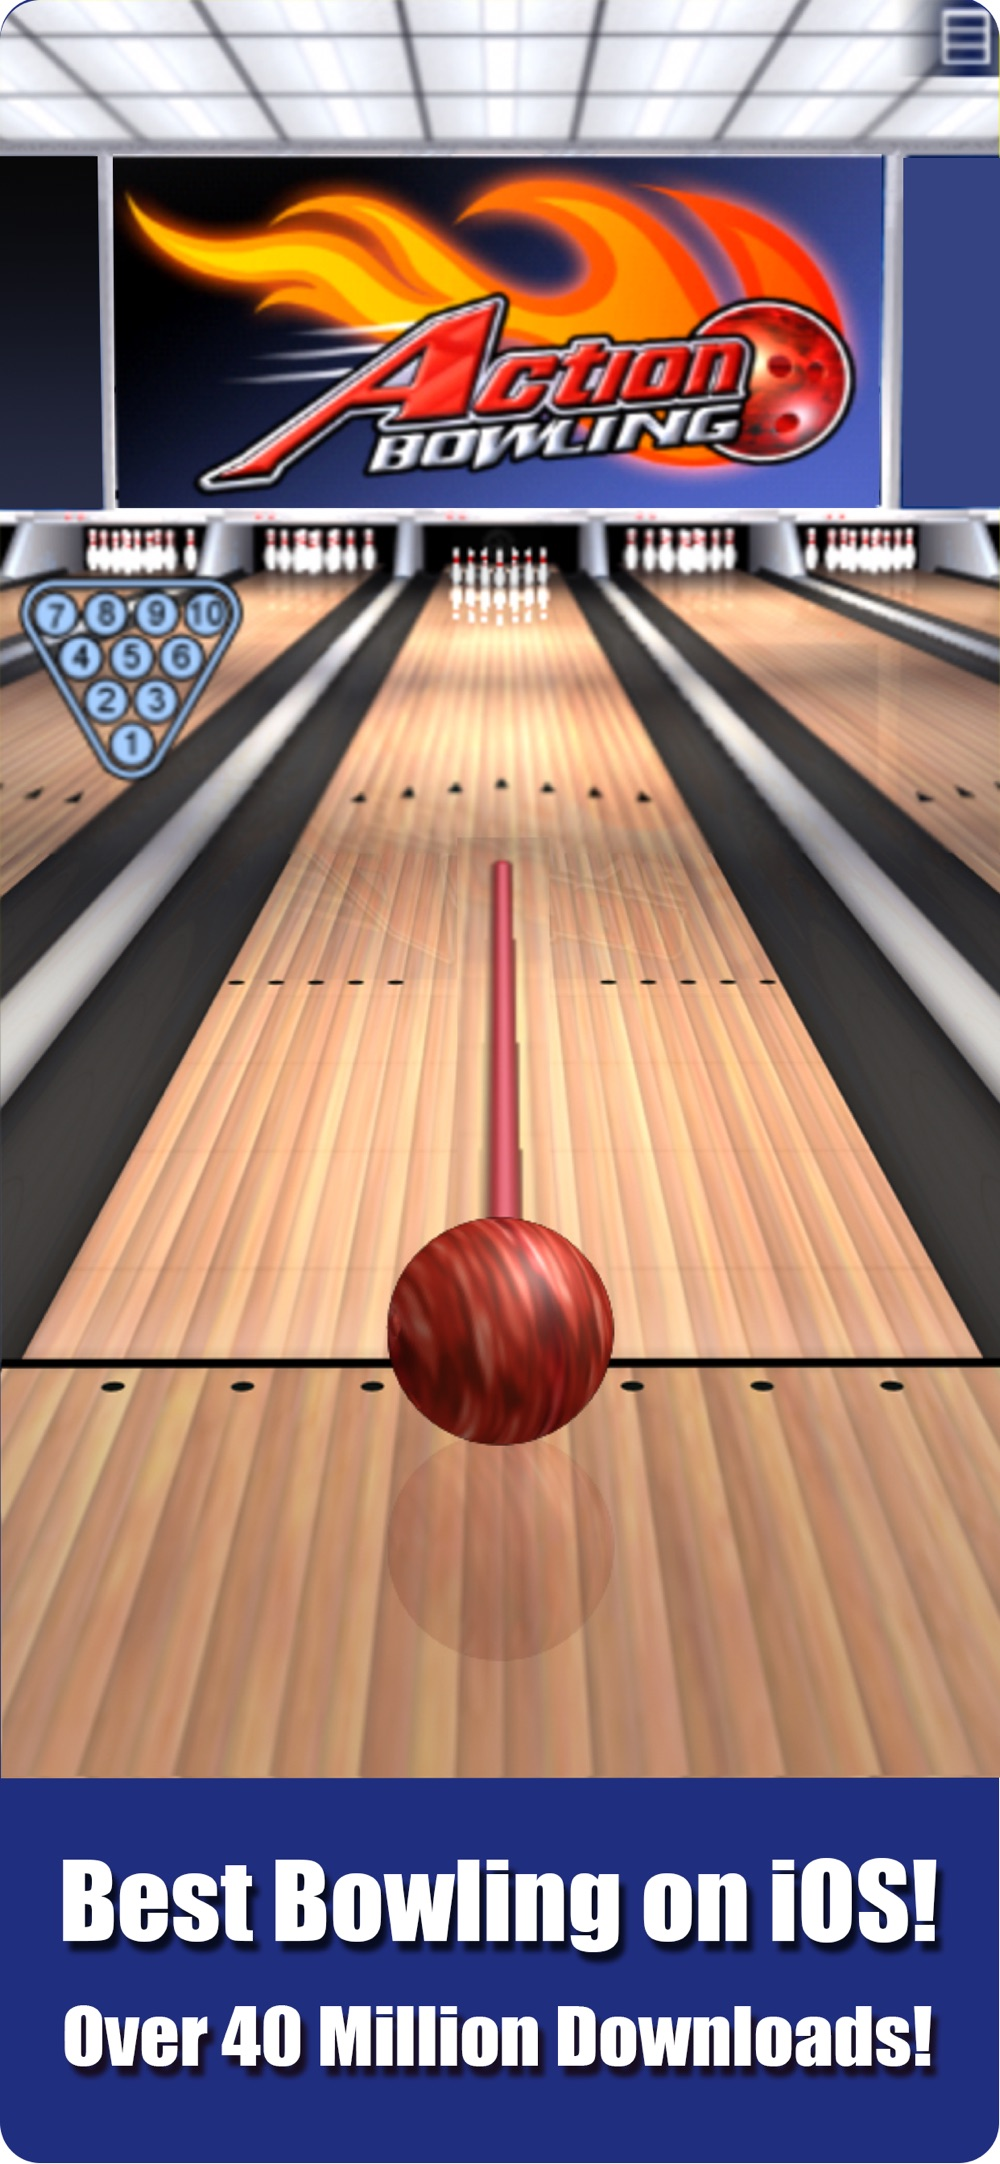 Action Bowling – The Sequel Cheat Codes